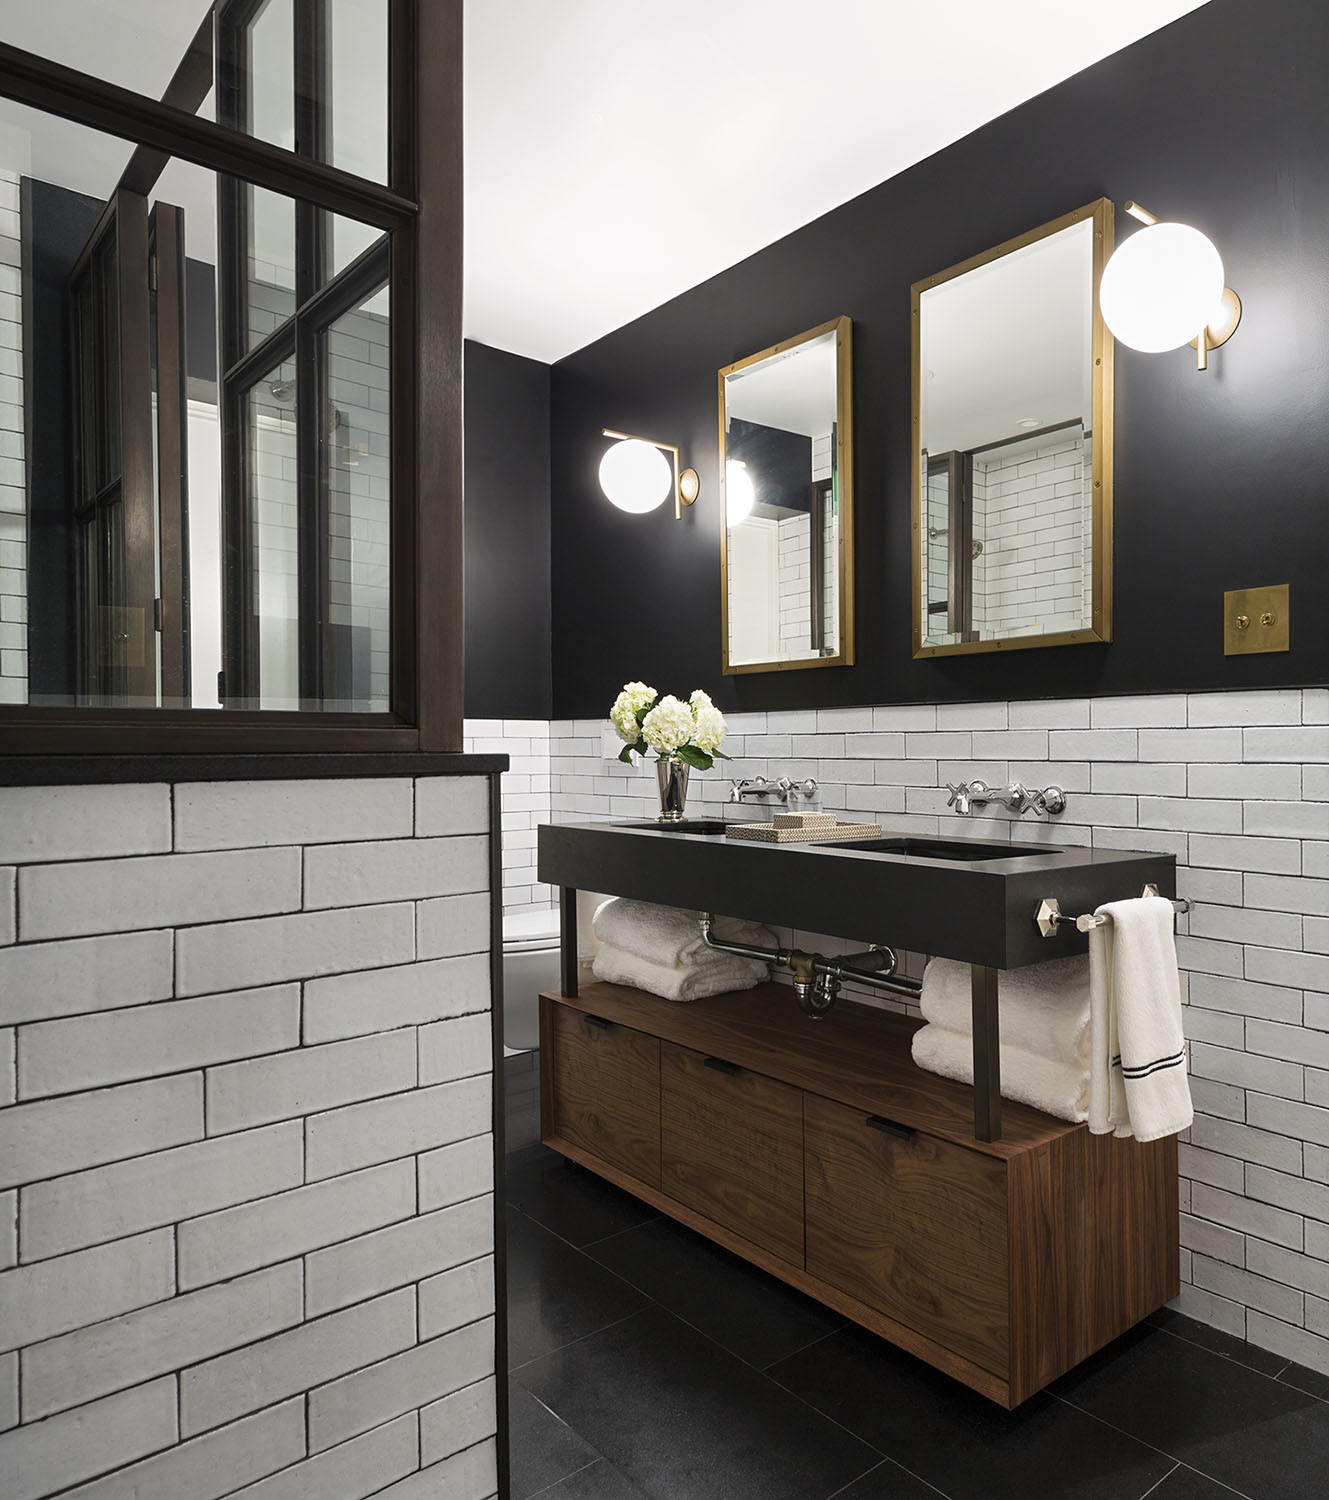 Duplex subway tile bathroom in downtown